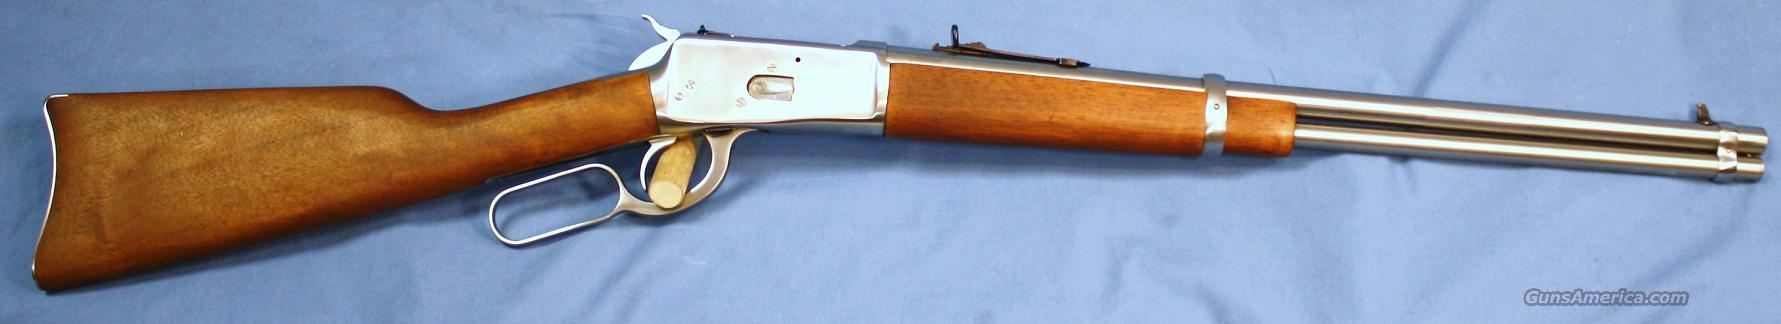 Rossi Model 92 Stainless Steel Lever Action Carbine 357 Magnum  Guns > Rifles > Rossi Rifles > Cowboy